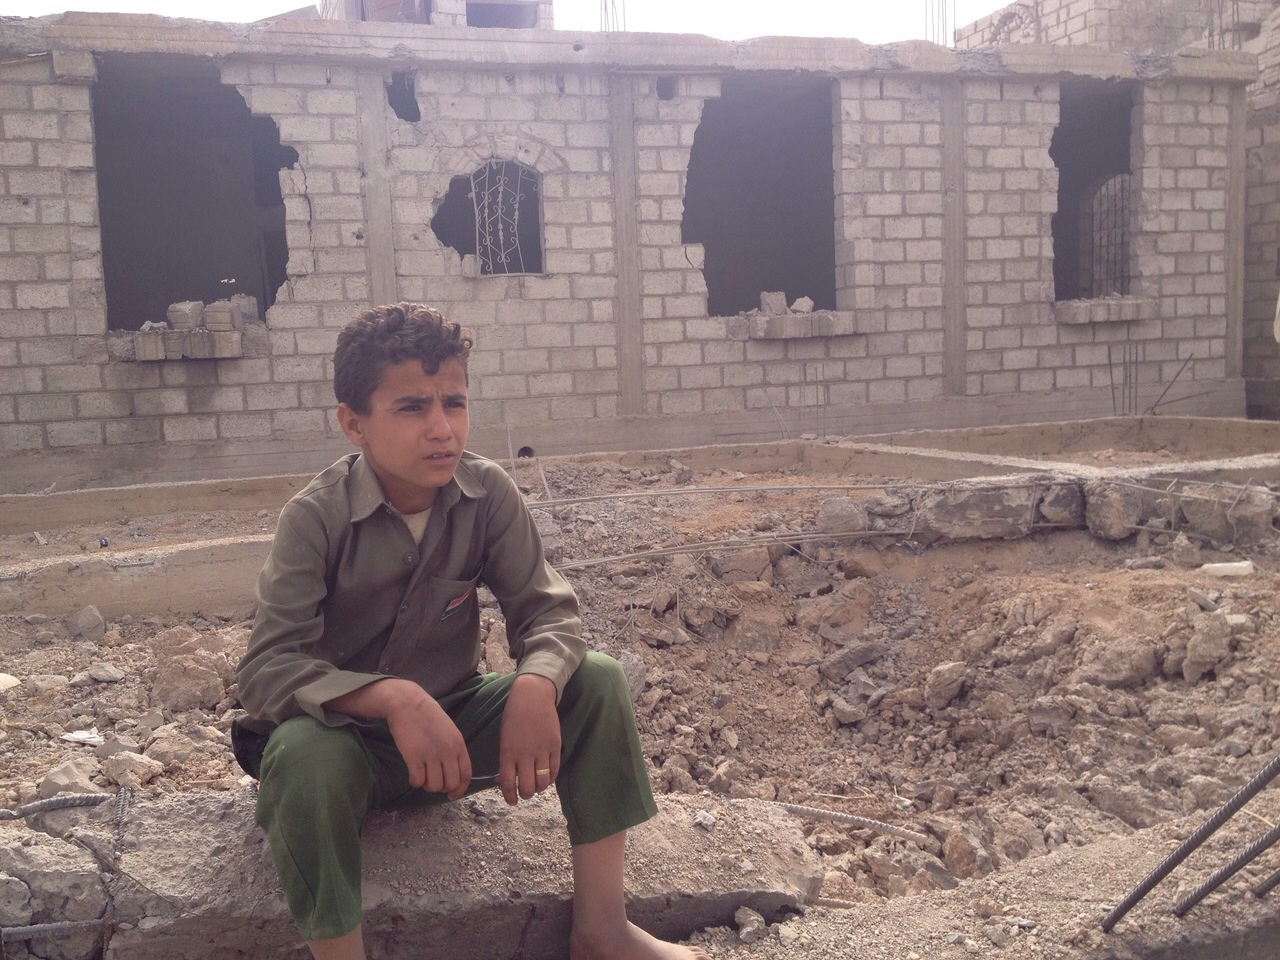 A young boy, who was luckily in school during the aerial attack by Saudi-led forces, sits outside his home on debris.r, 90KM south of Sanaa the capital of Yemen, in the afternoon hours on Tuesday, April 14, 2015.